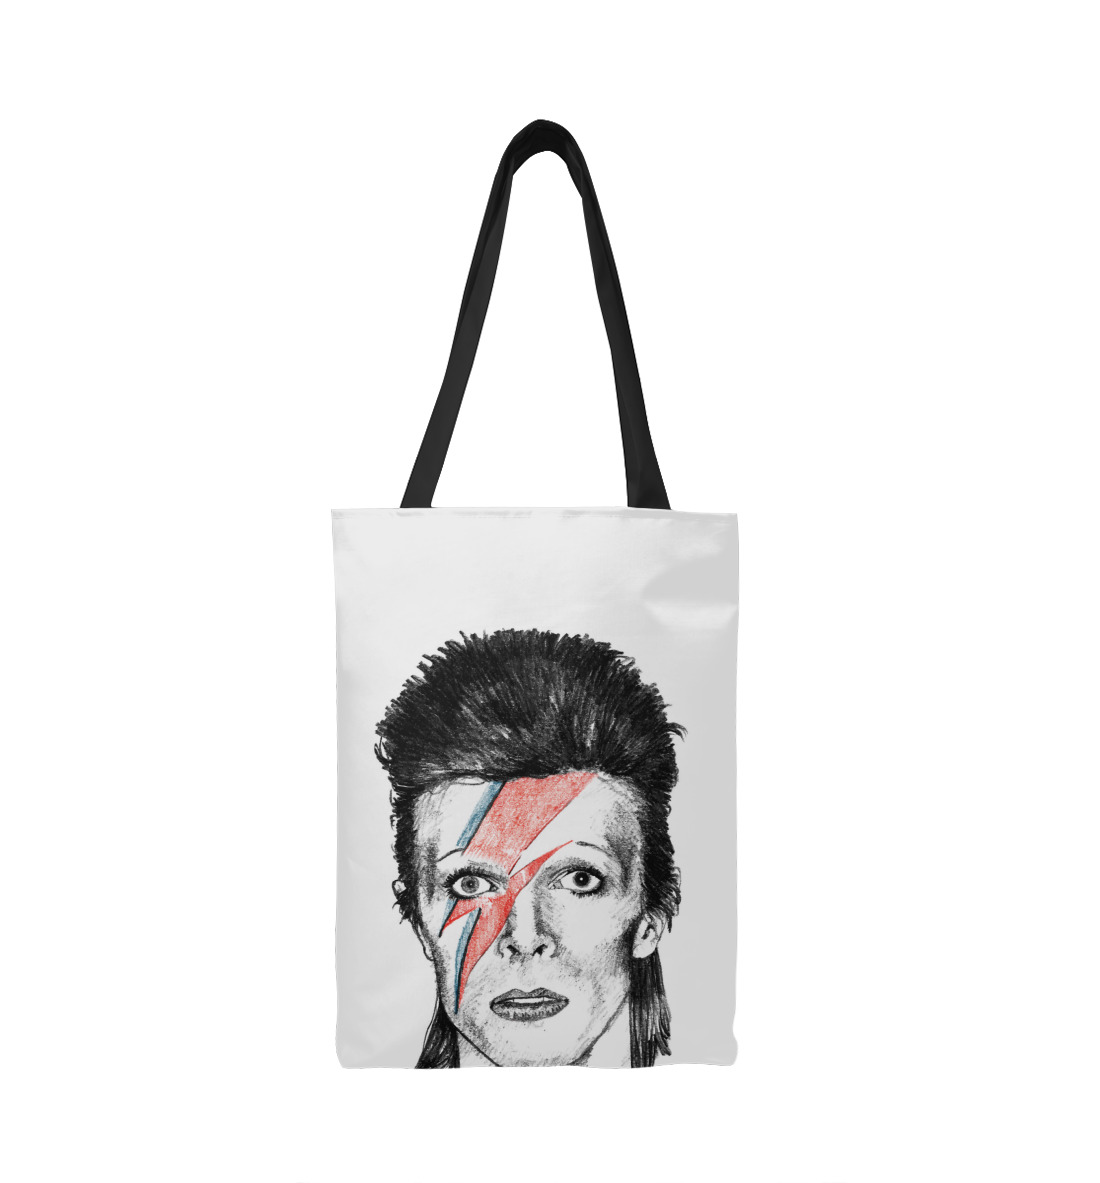 David Bowie david bowie david bowie changesnowbowie limited